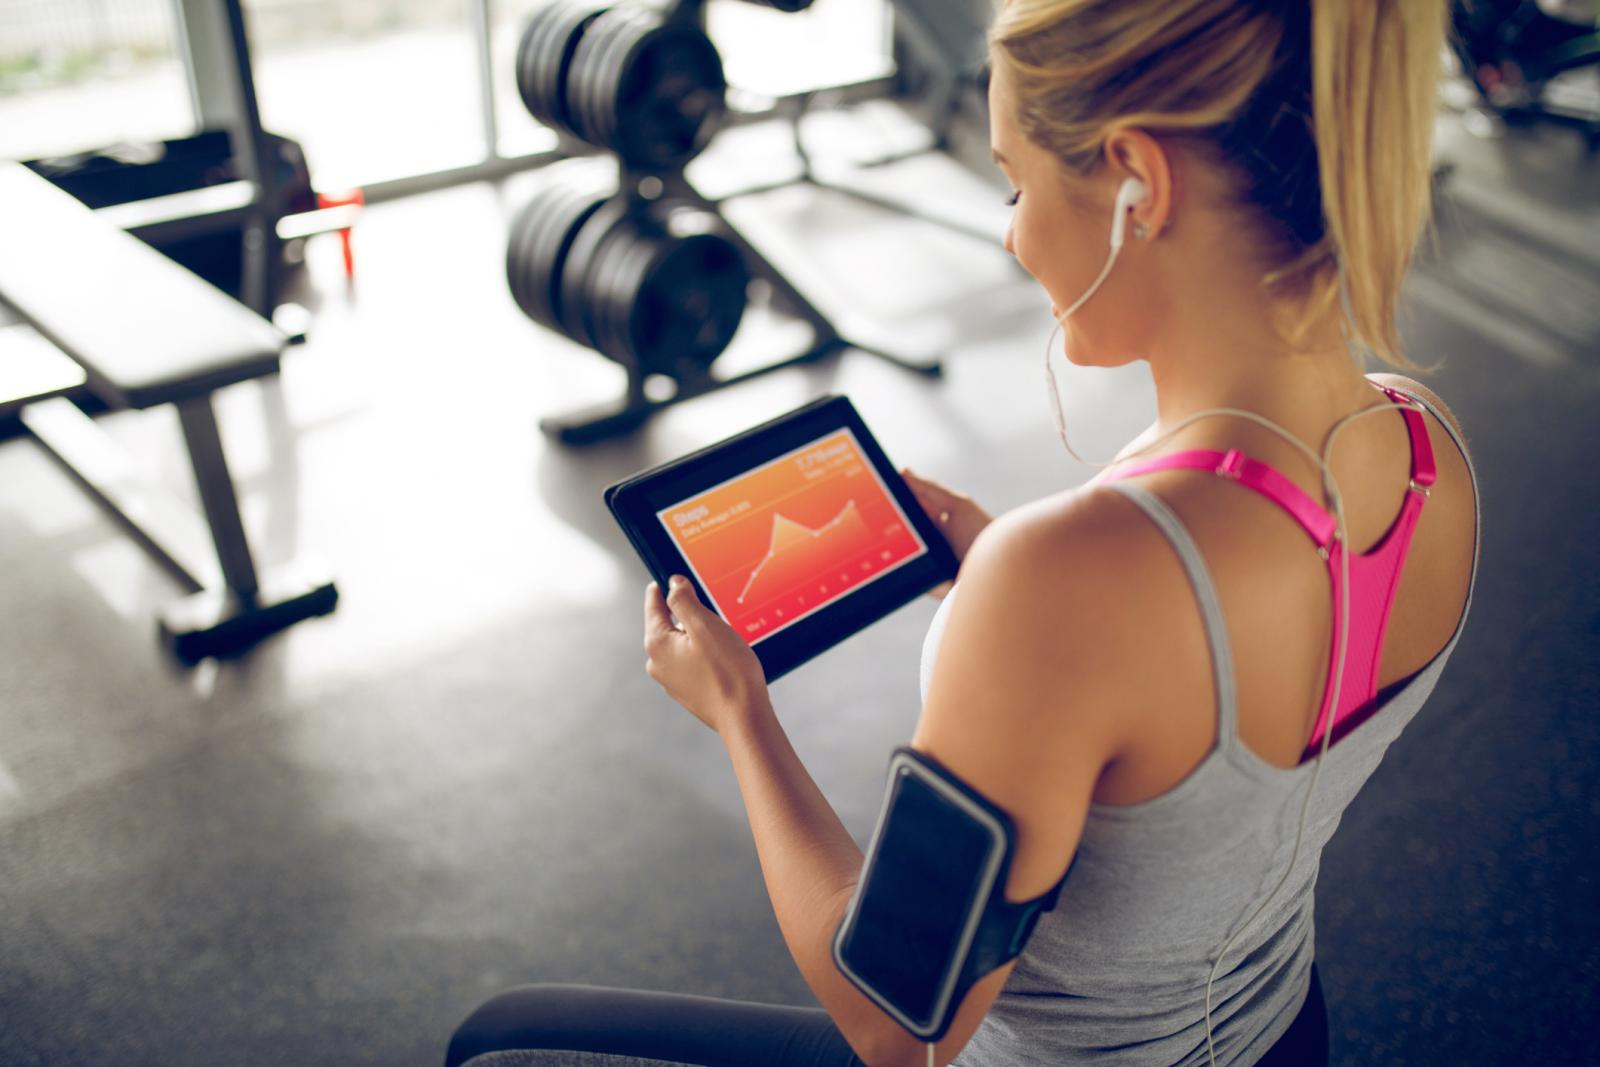 Tracking her progress with fitness app on digital tablet